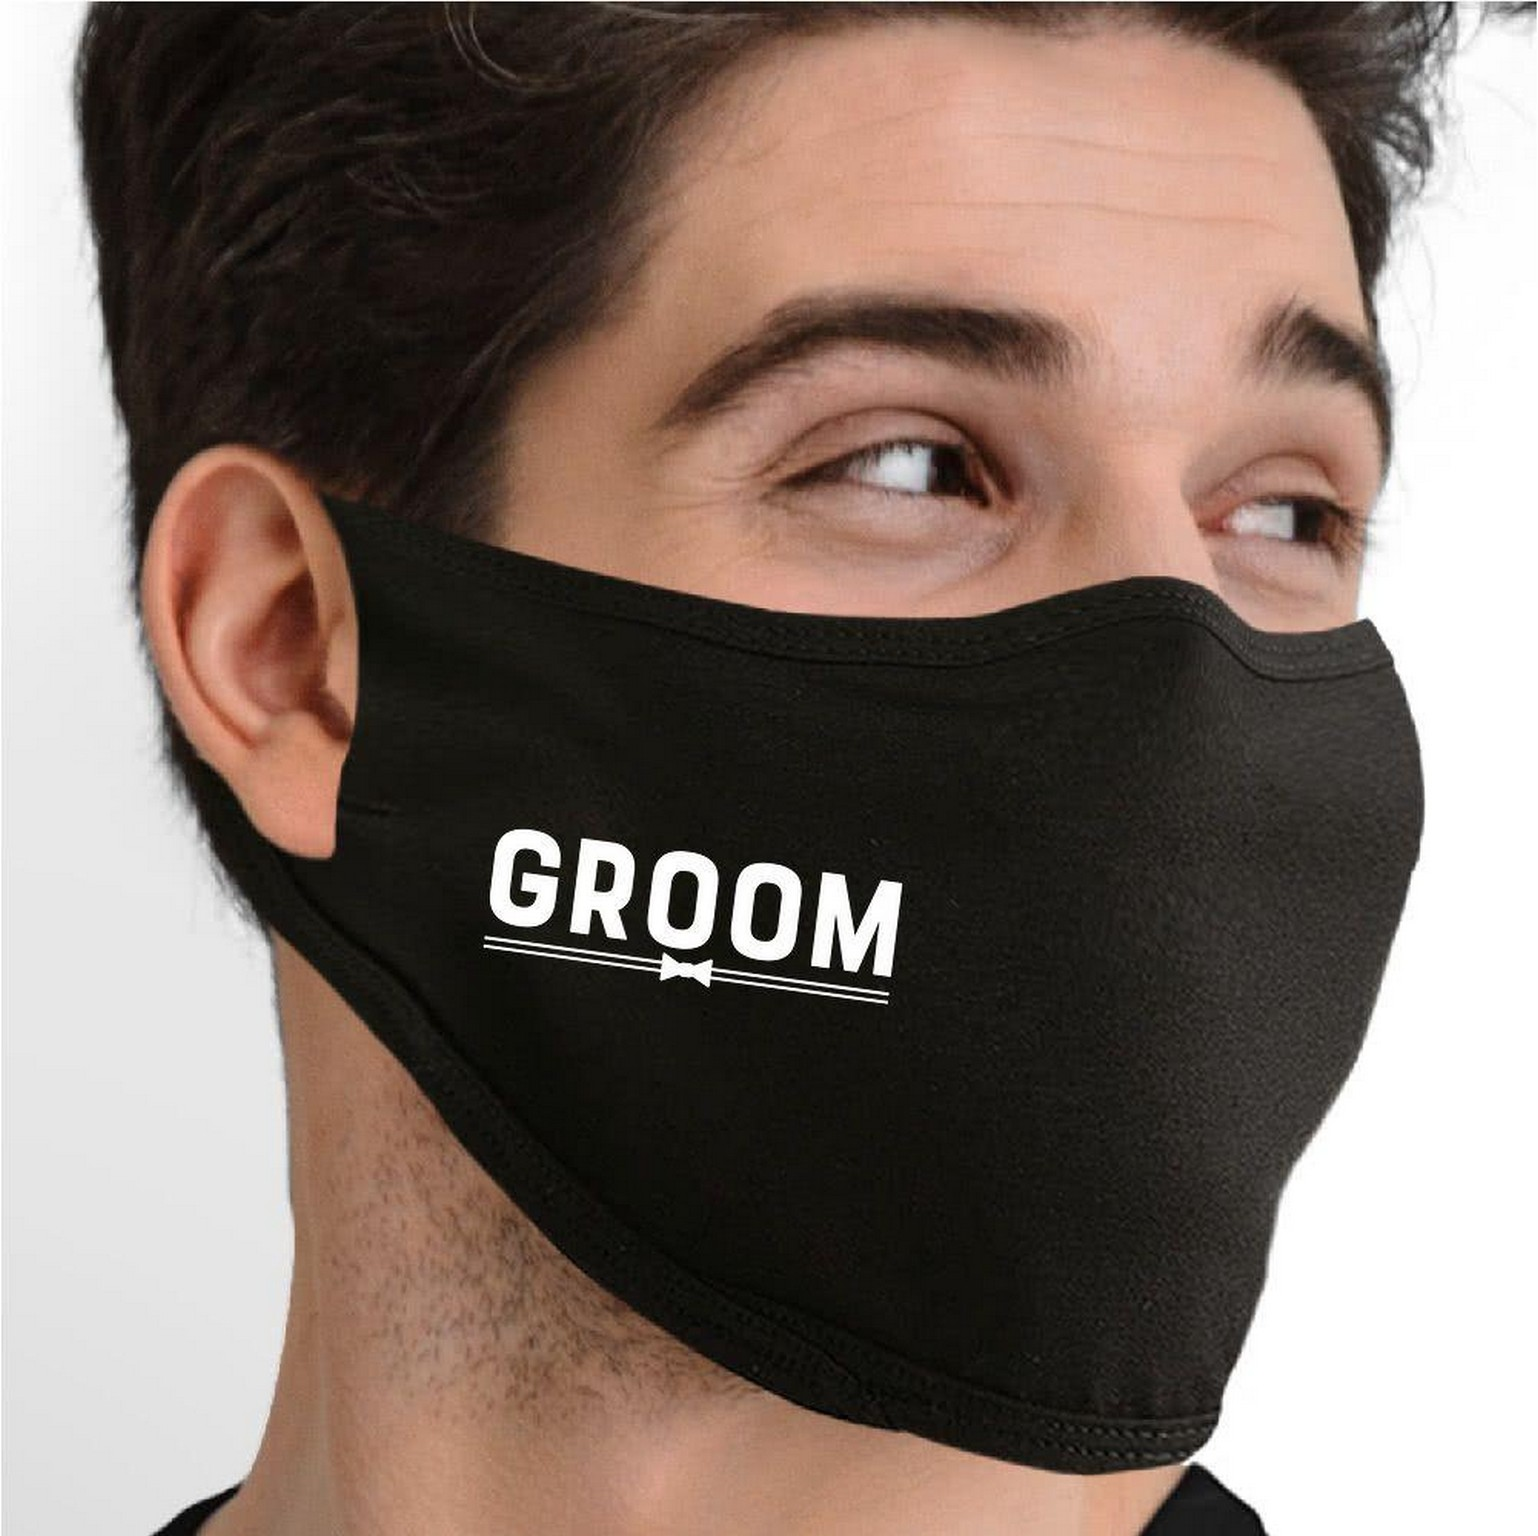 Cotton mask for a groom